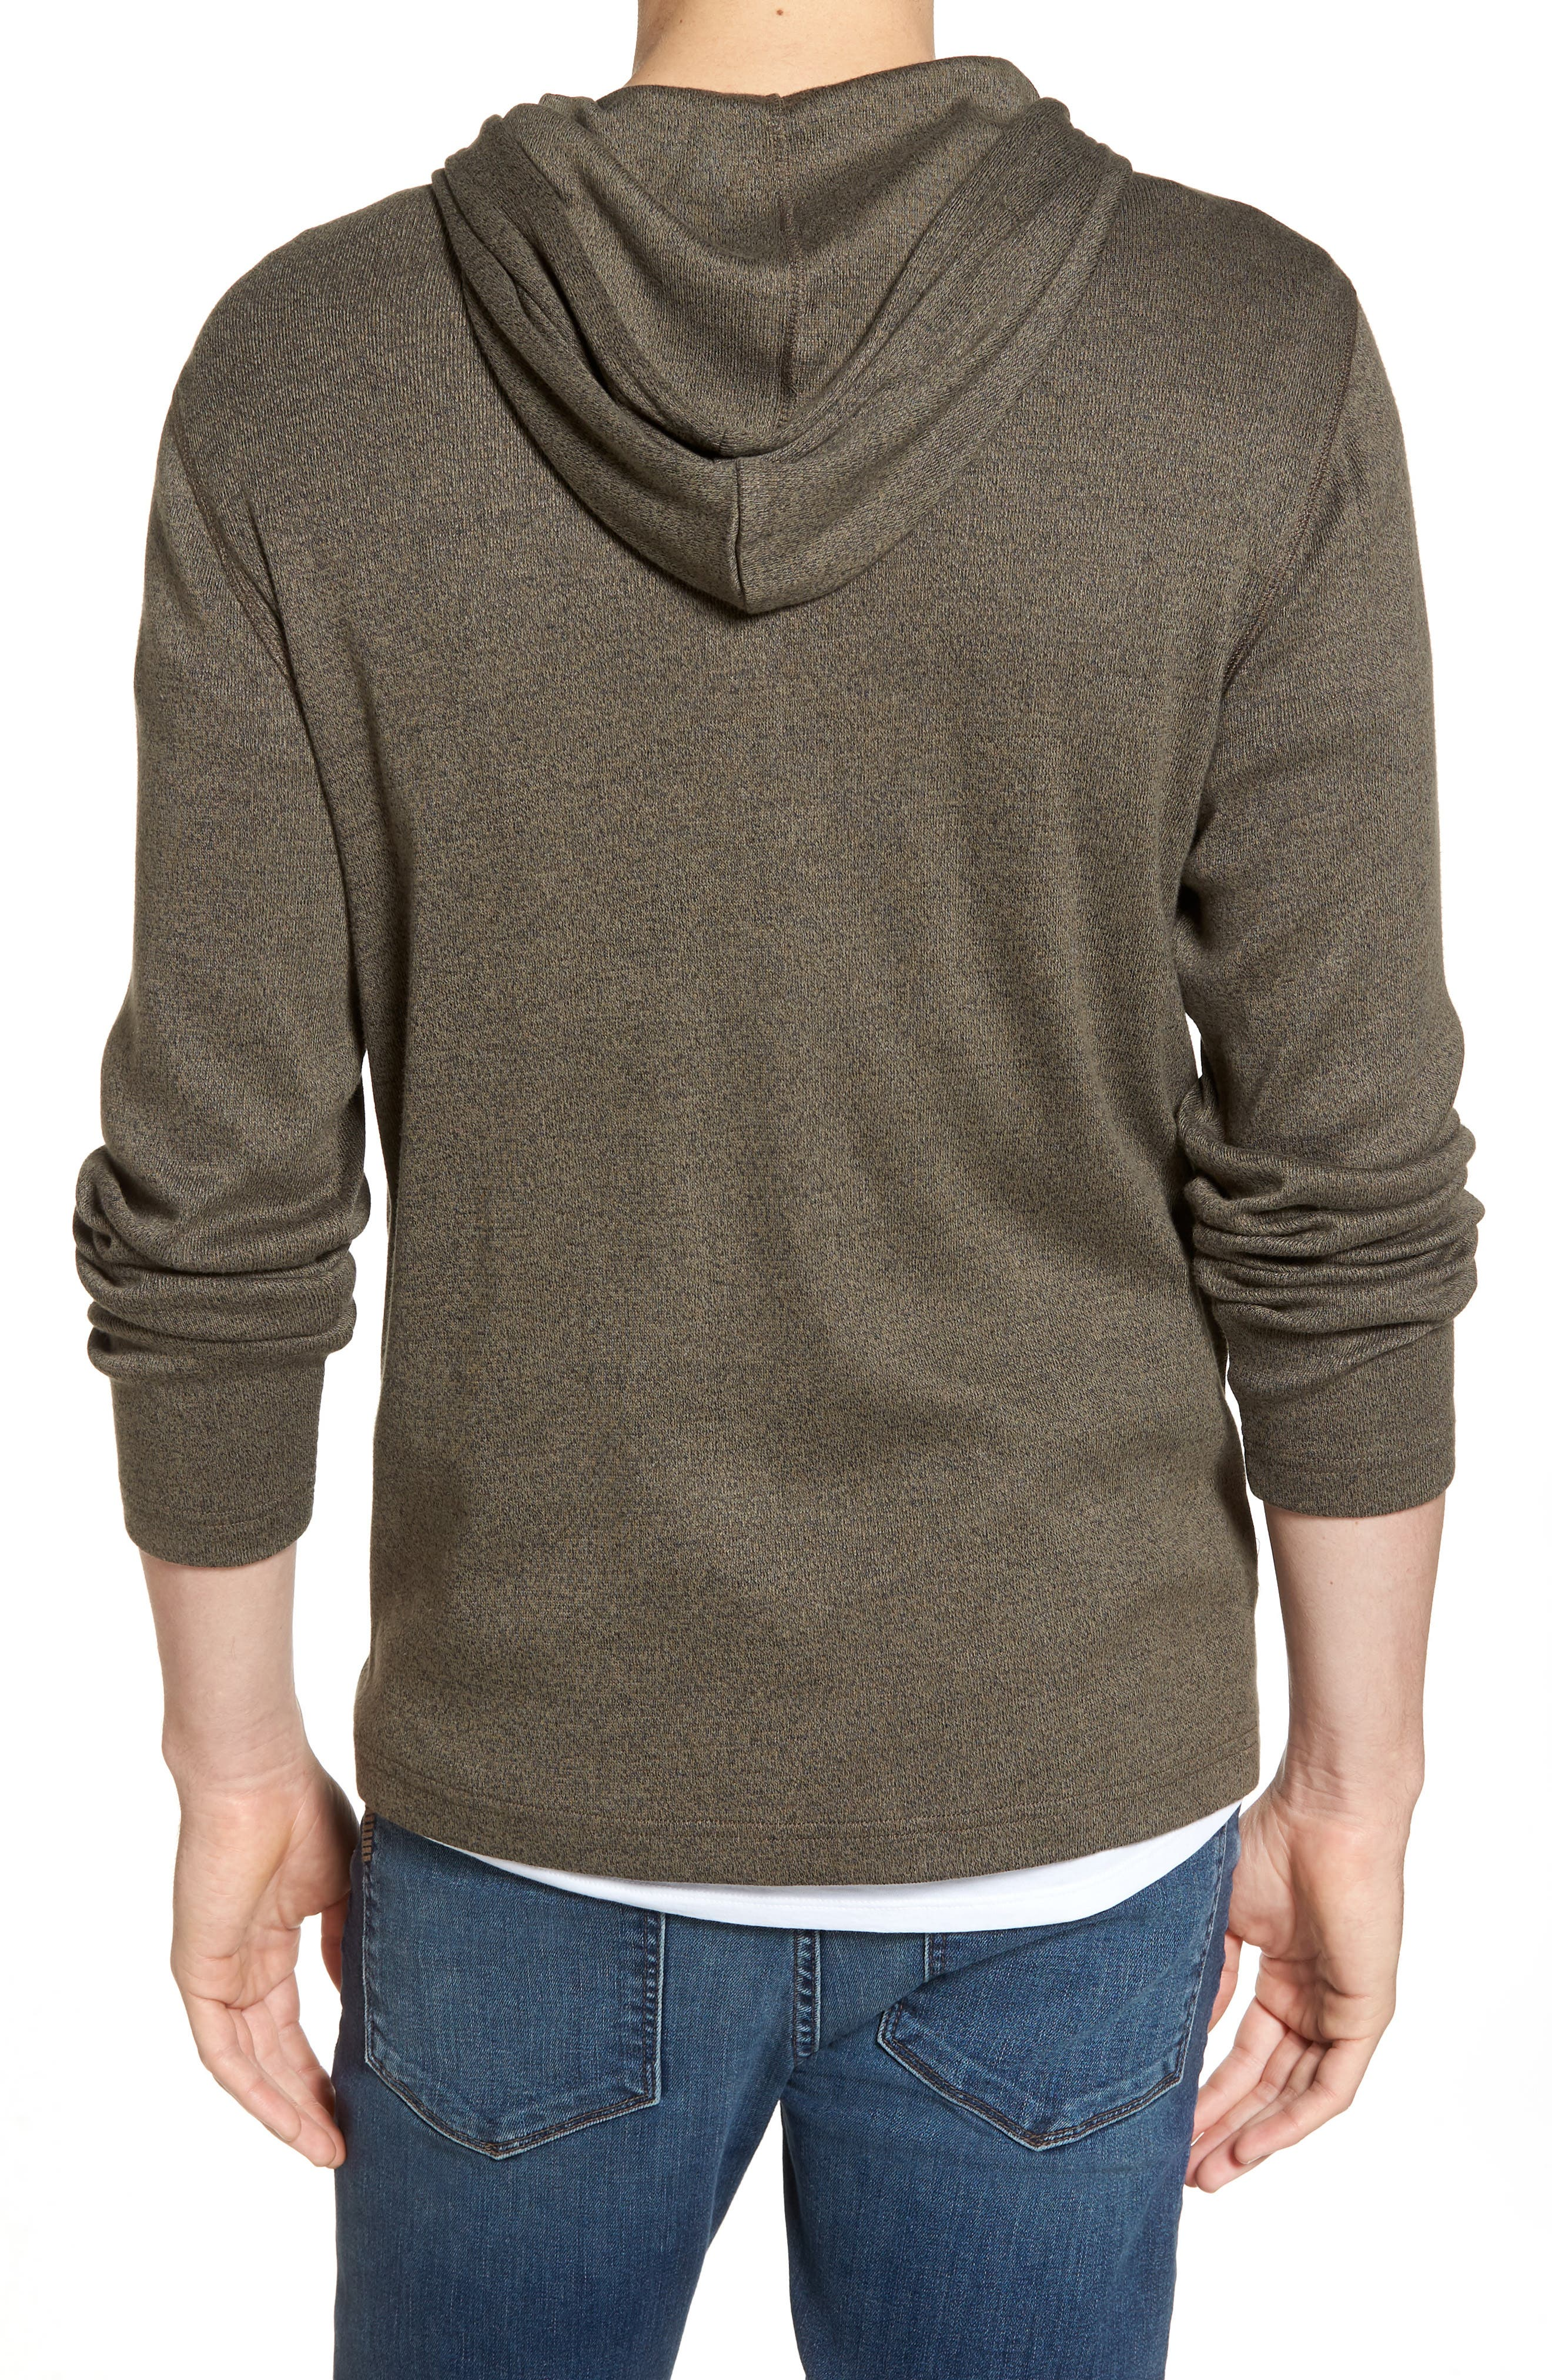 Knit Hooded Pullover,                             Alternate thumbnail 2, color,                             Olive Tarmac Heather